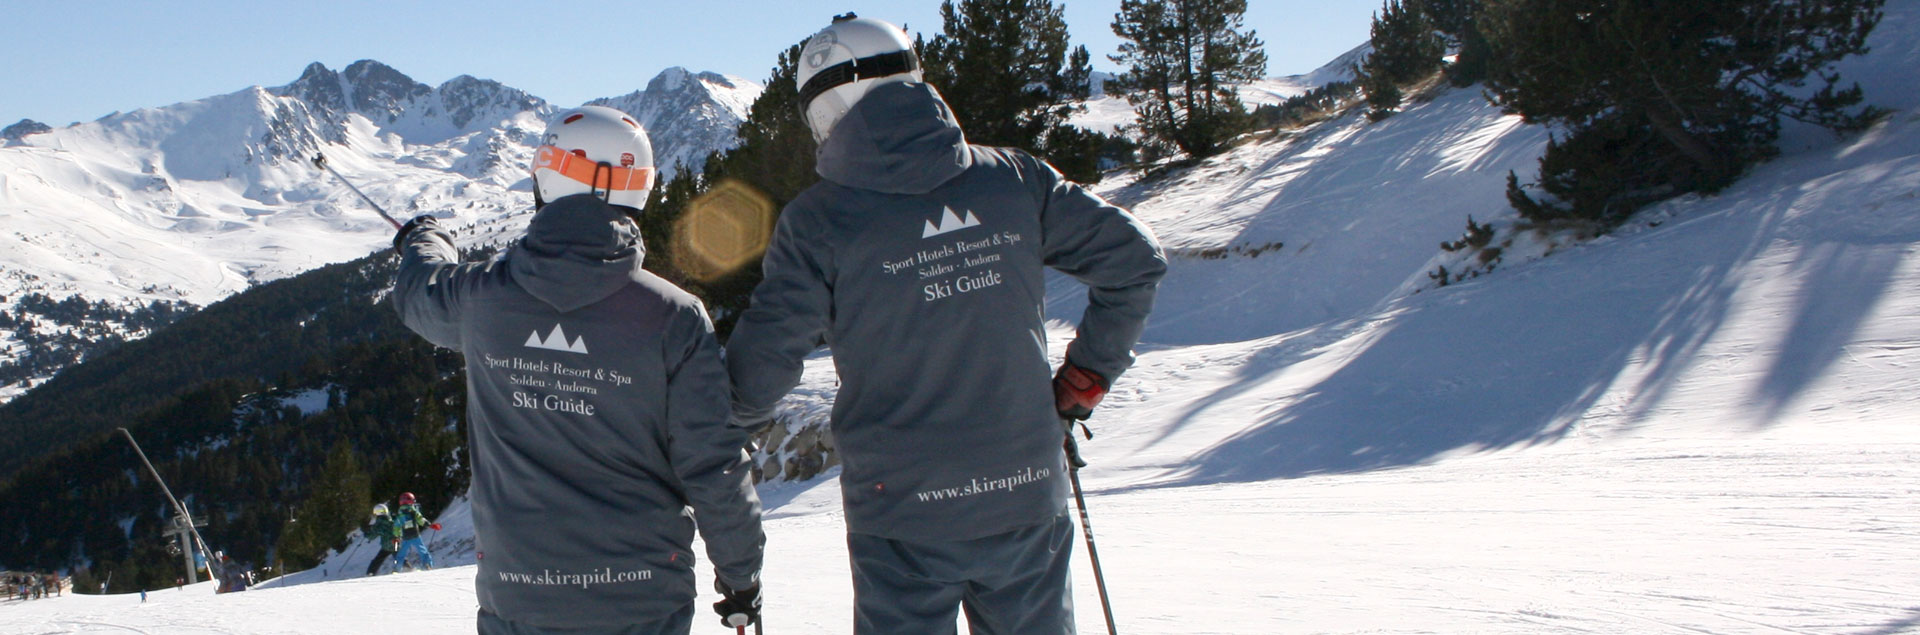 Ski hotels in Soldeu with ski guide